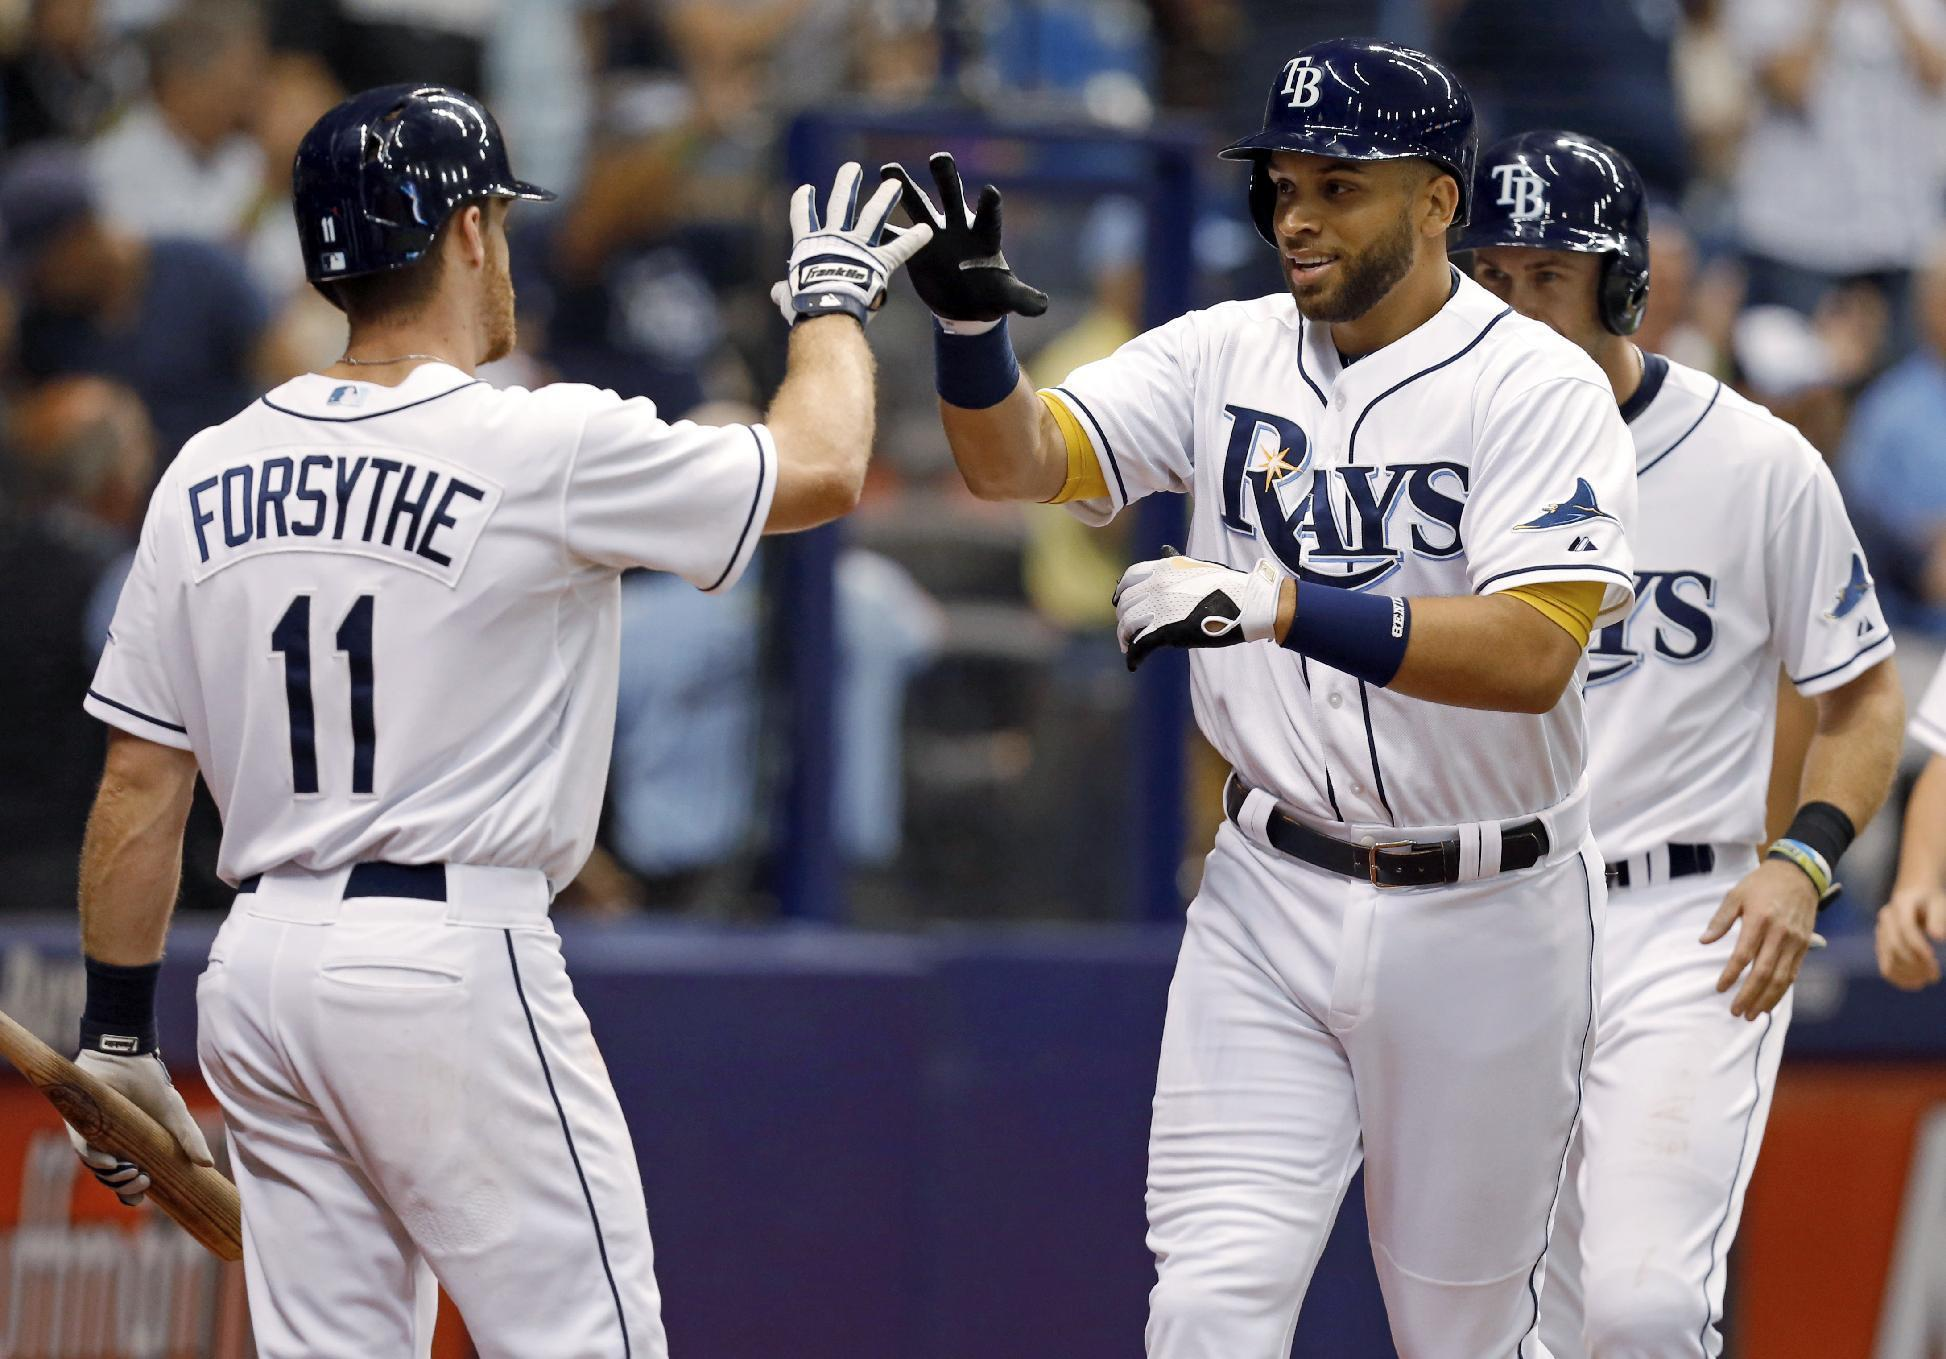 Rays hit 3 homers in 12-3 victory over Blue Jays